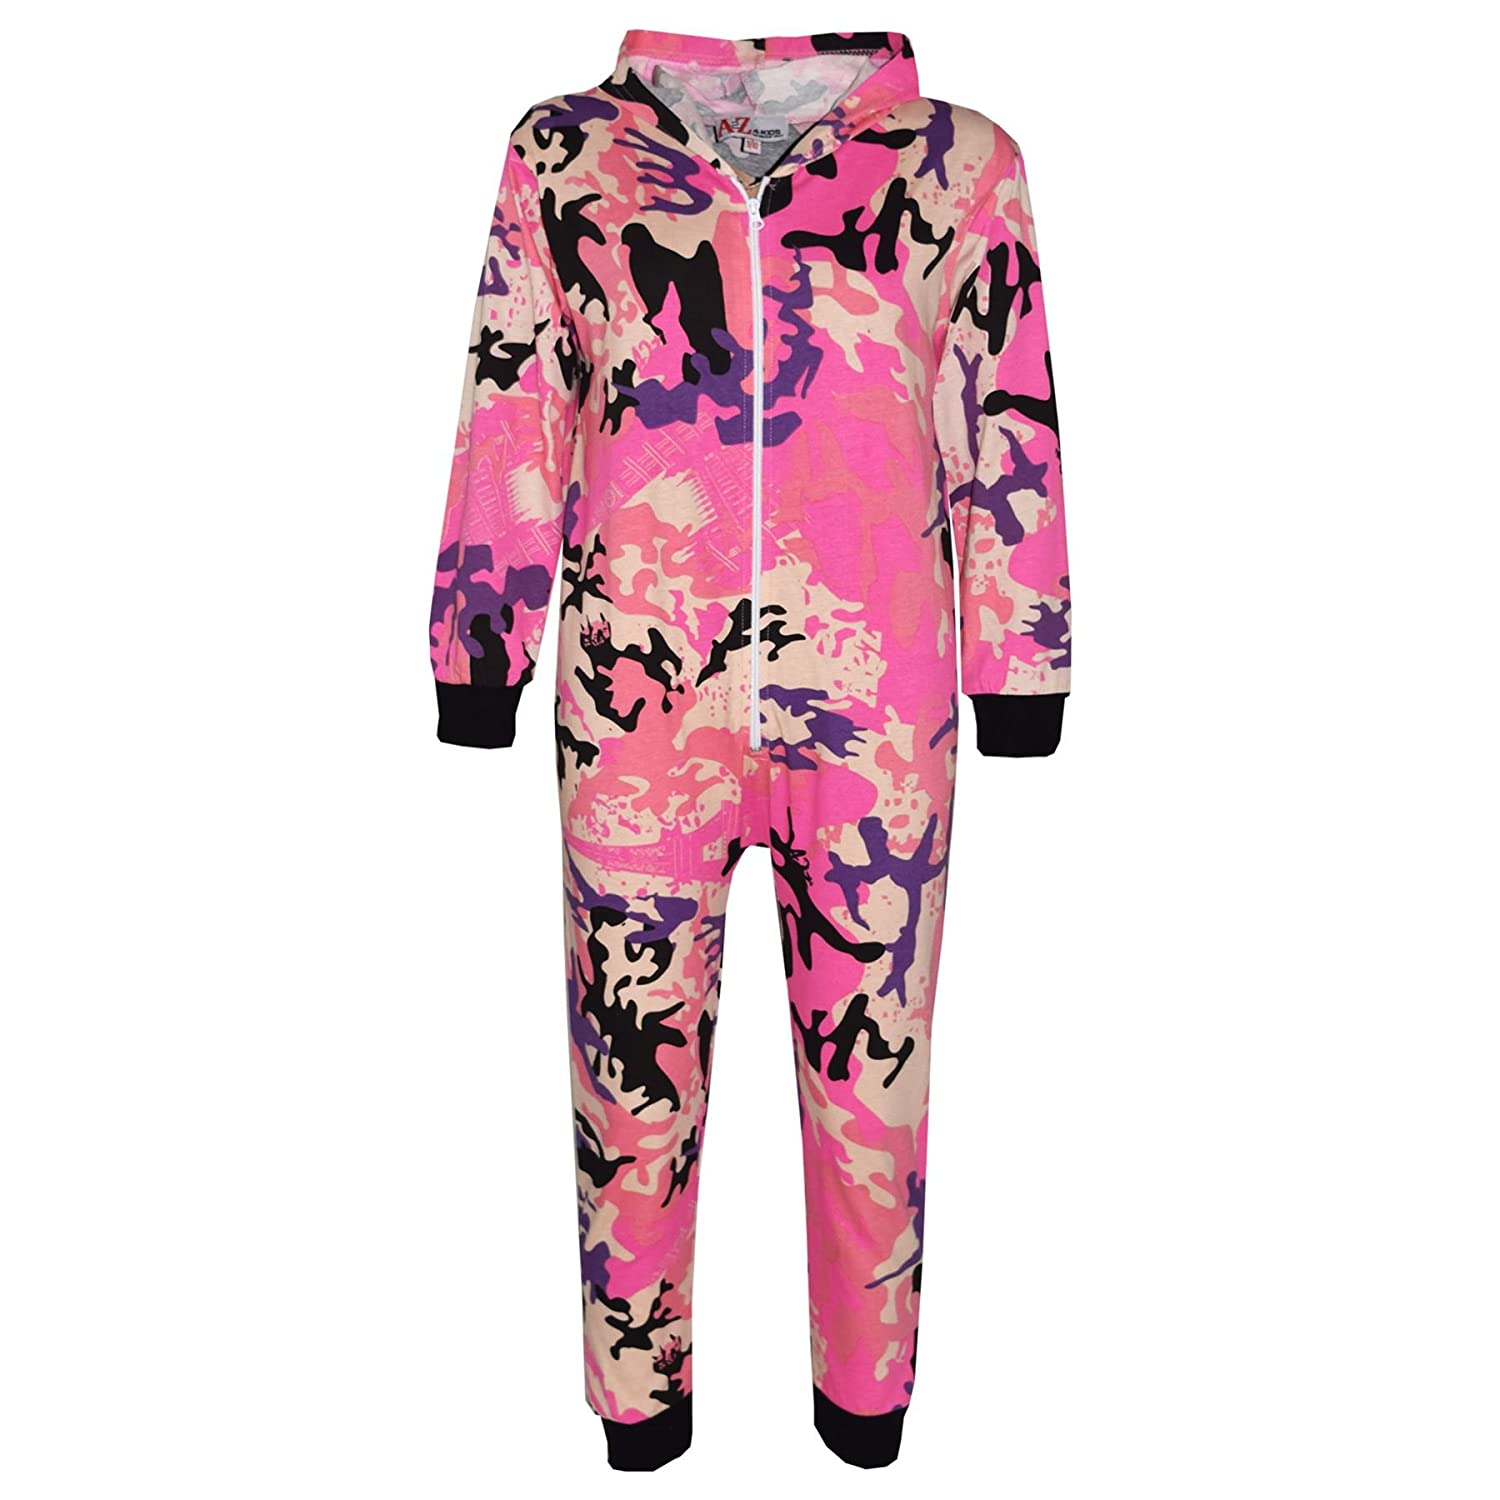 A2Z 4 Kids® Kids Onesie Girls Boys Designer's 100% Cotton Camouflage Print All in One Jumpsuit Playsuit New Age 5 6 7 8 9 10 11 12 13 Years